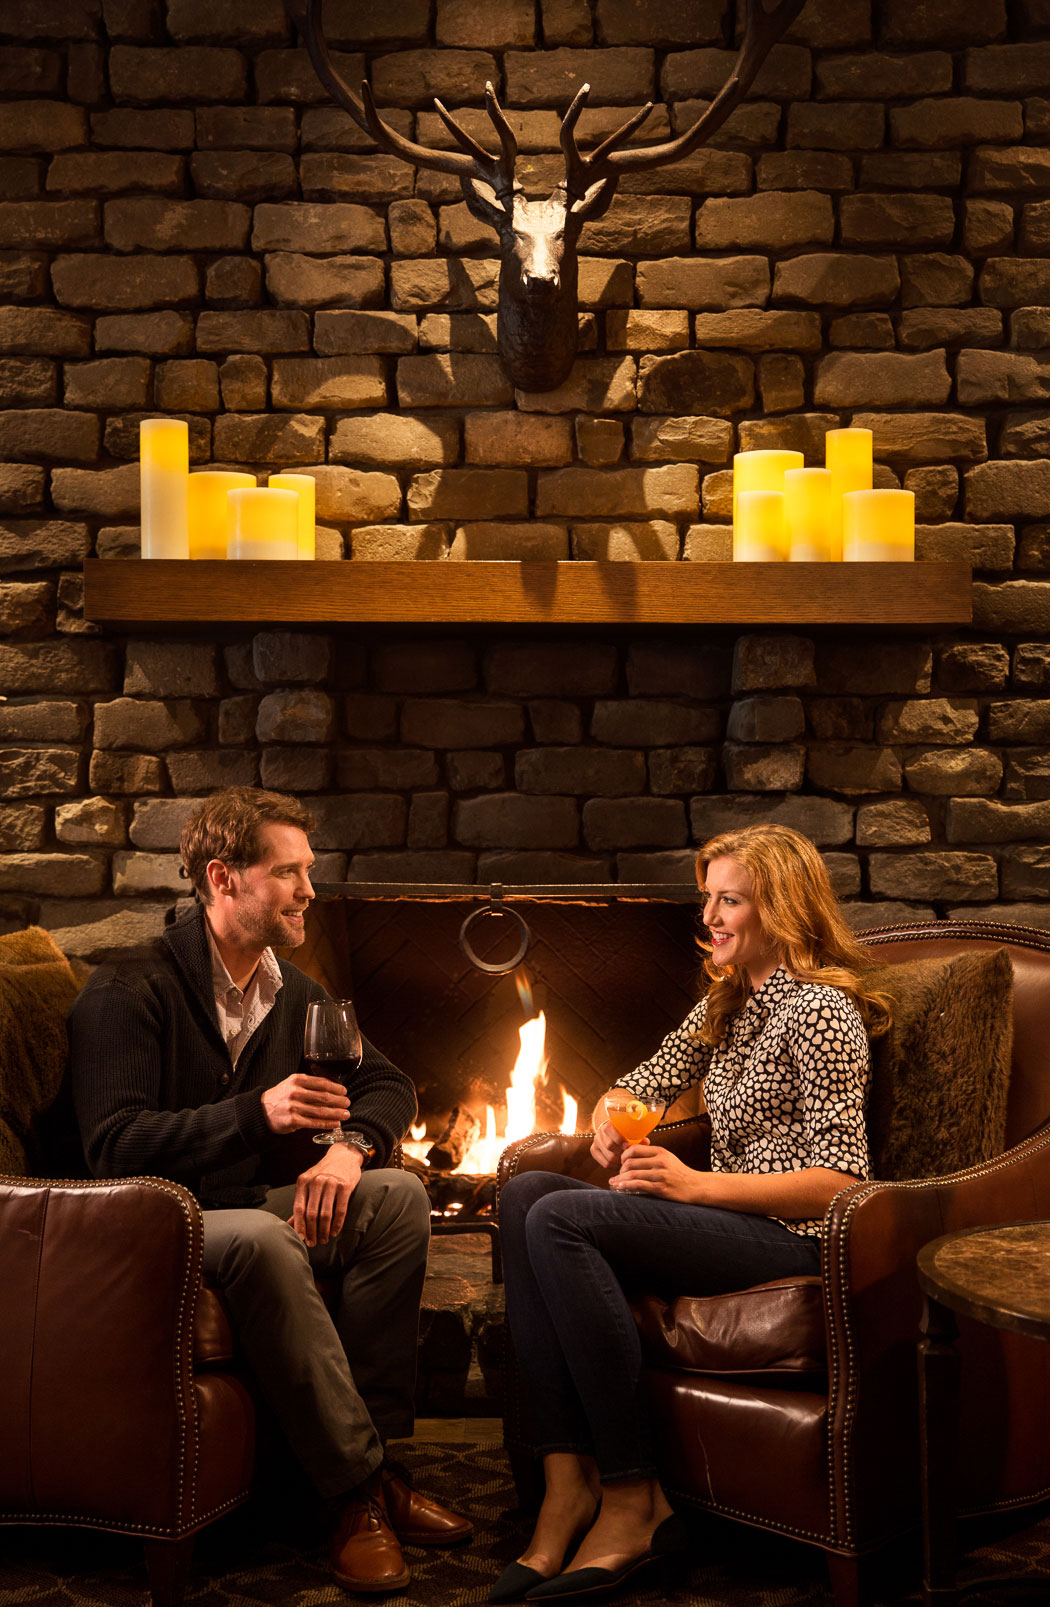 man and woman drinking wine in front of a fireplace